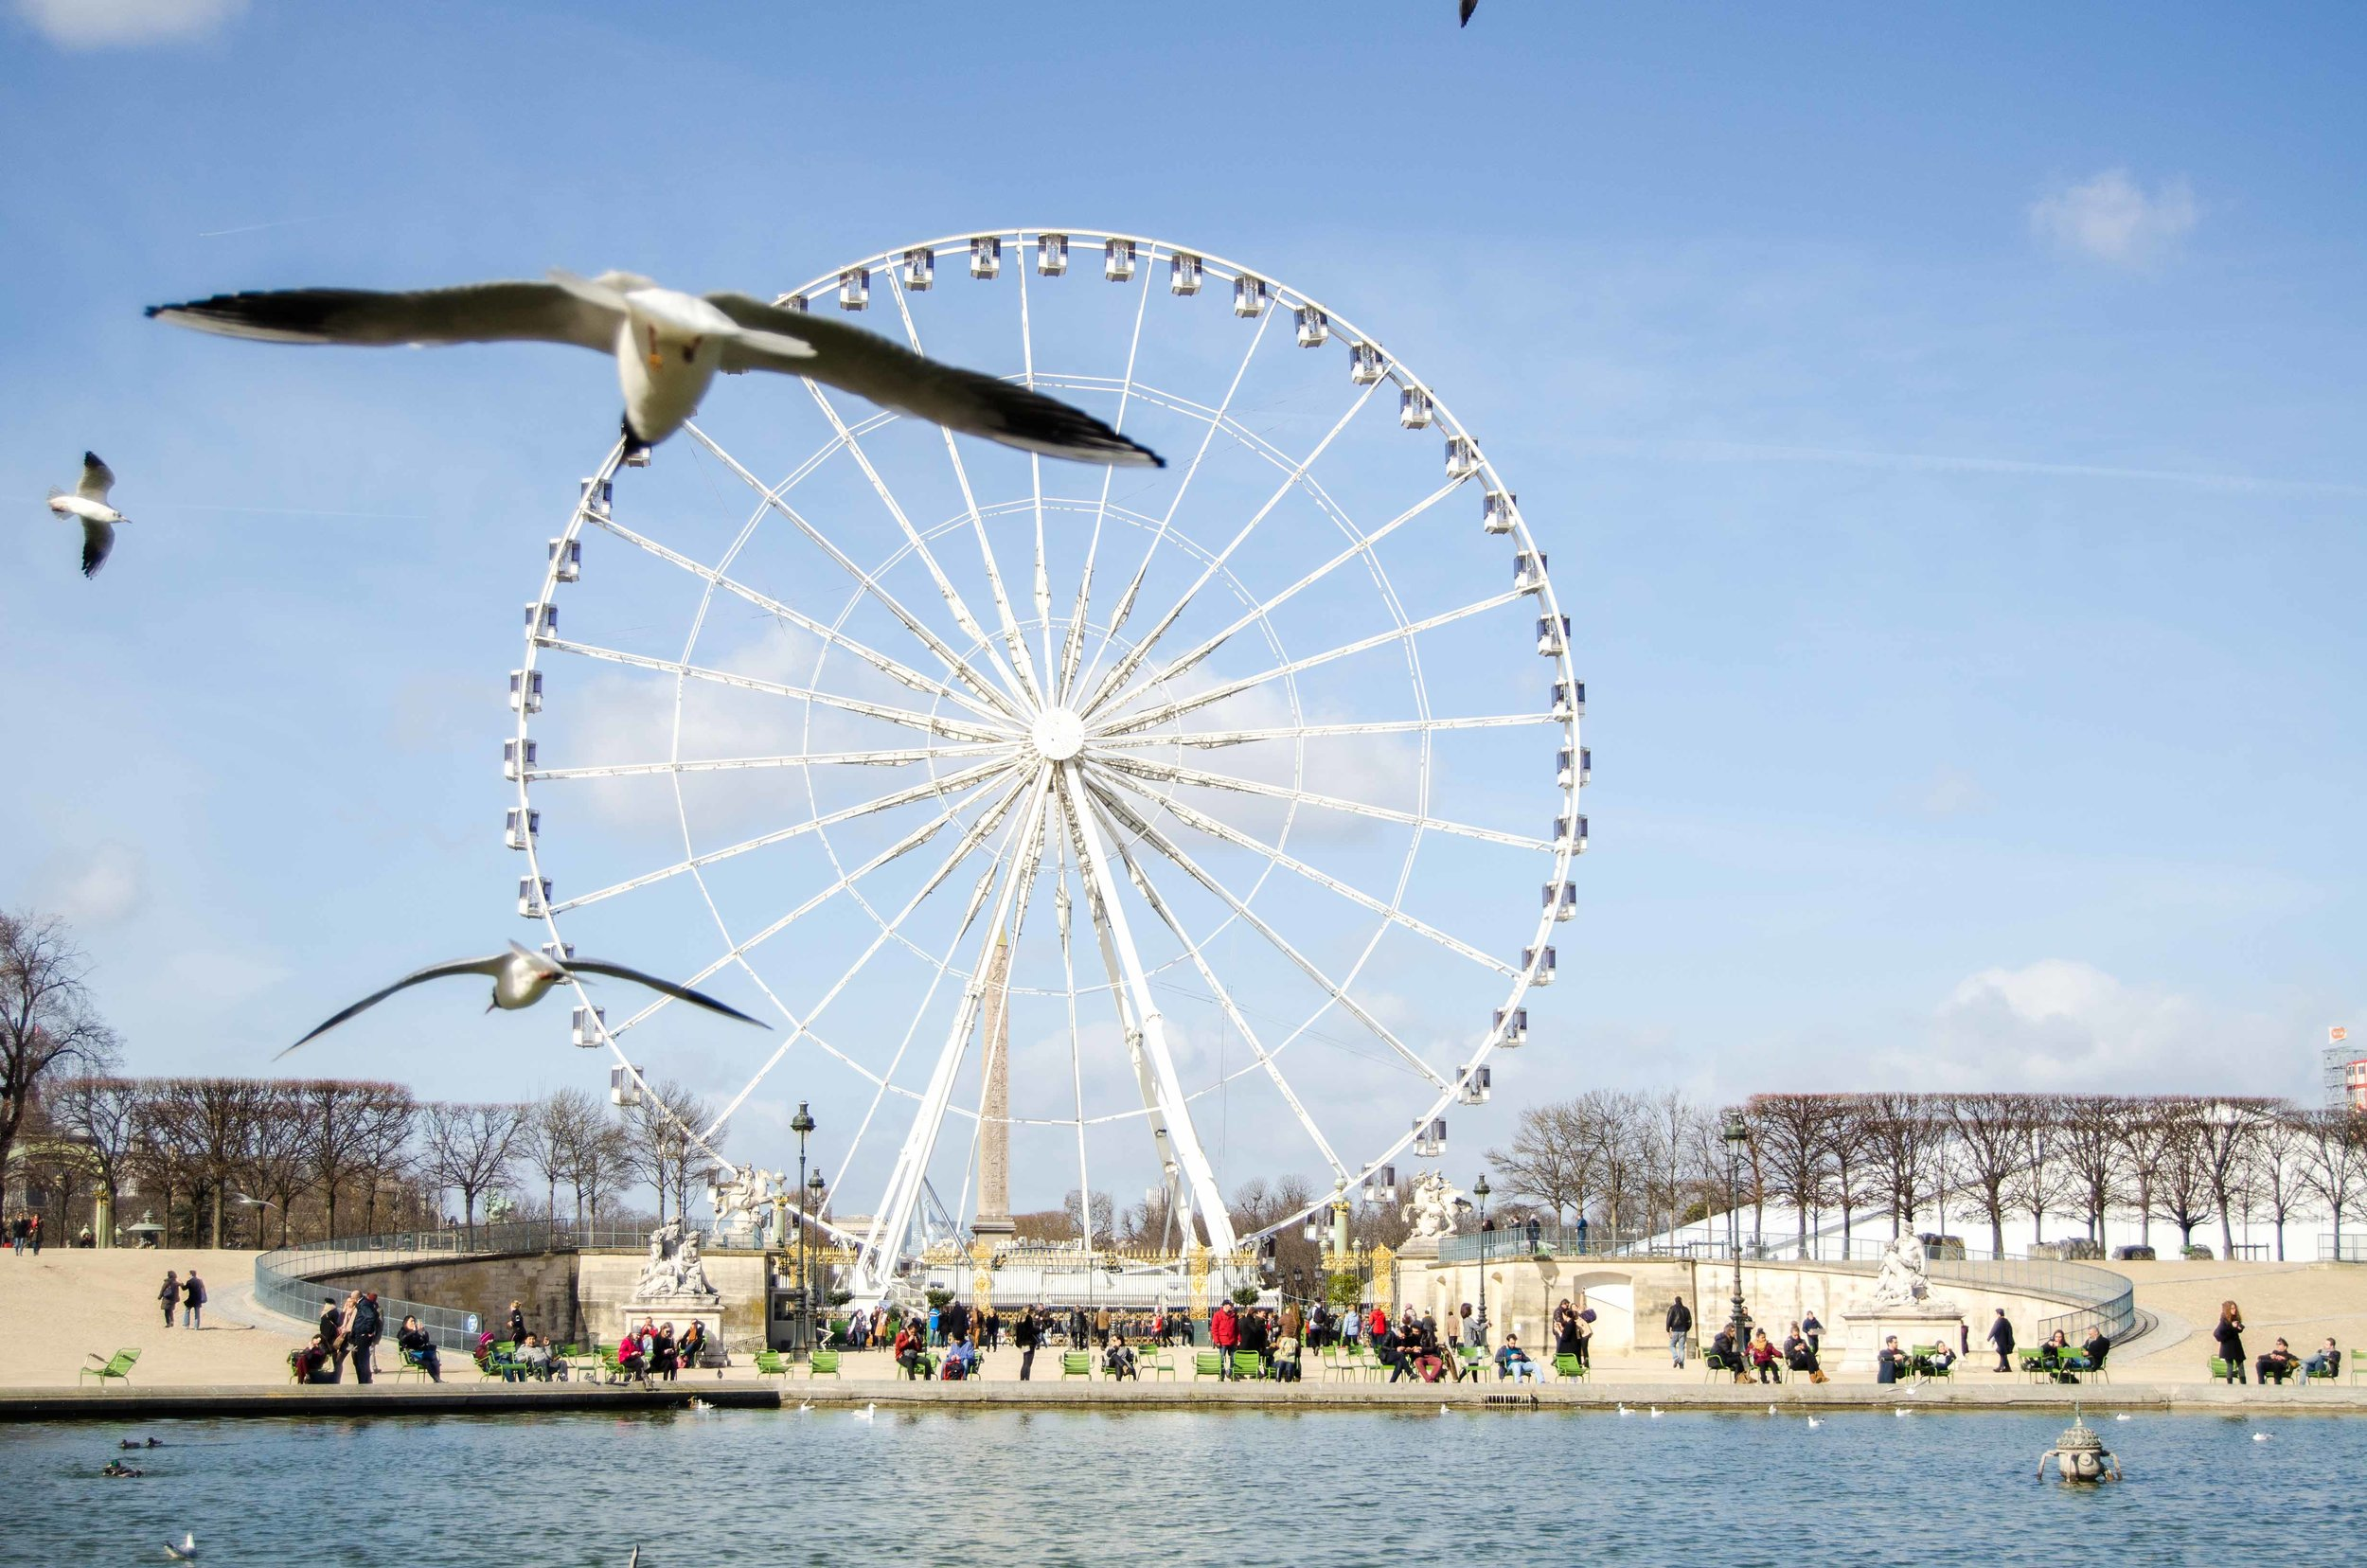 march 2 // ferris wheel at the top of the Jardin des Tuileries